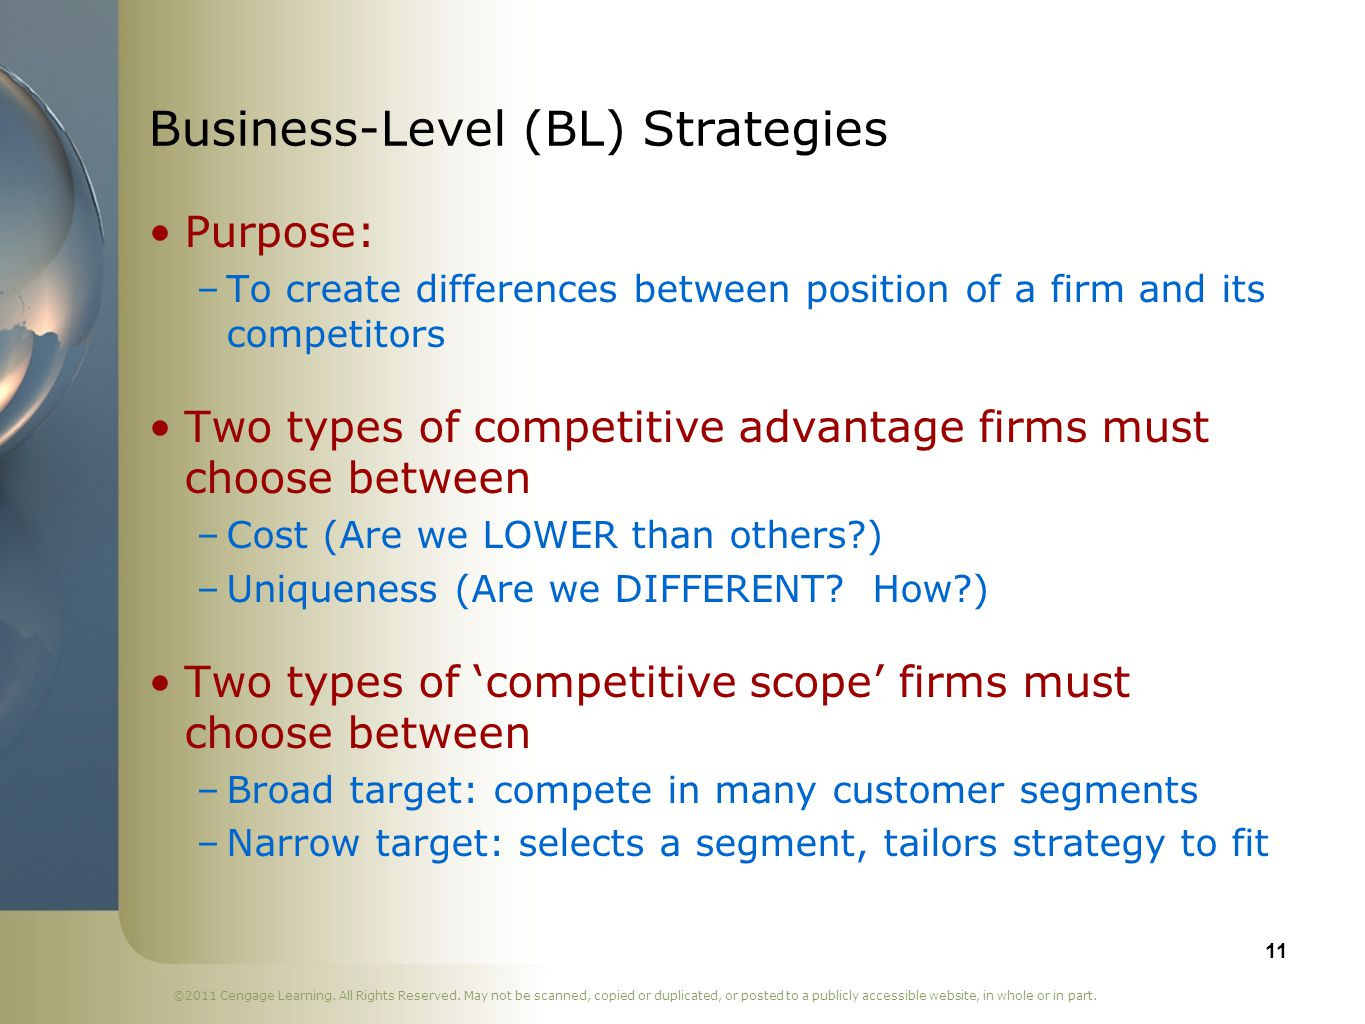 Business-Level (BL) Strategies